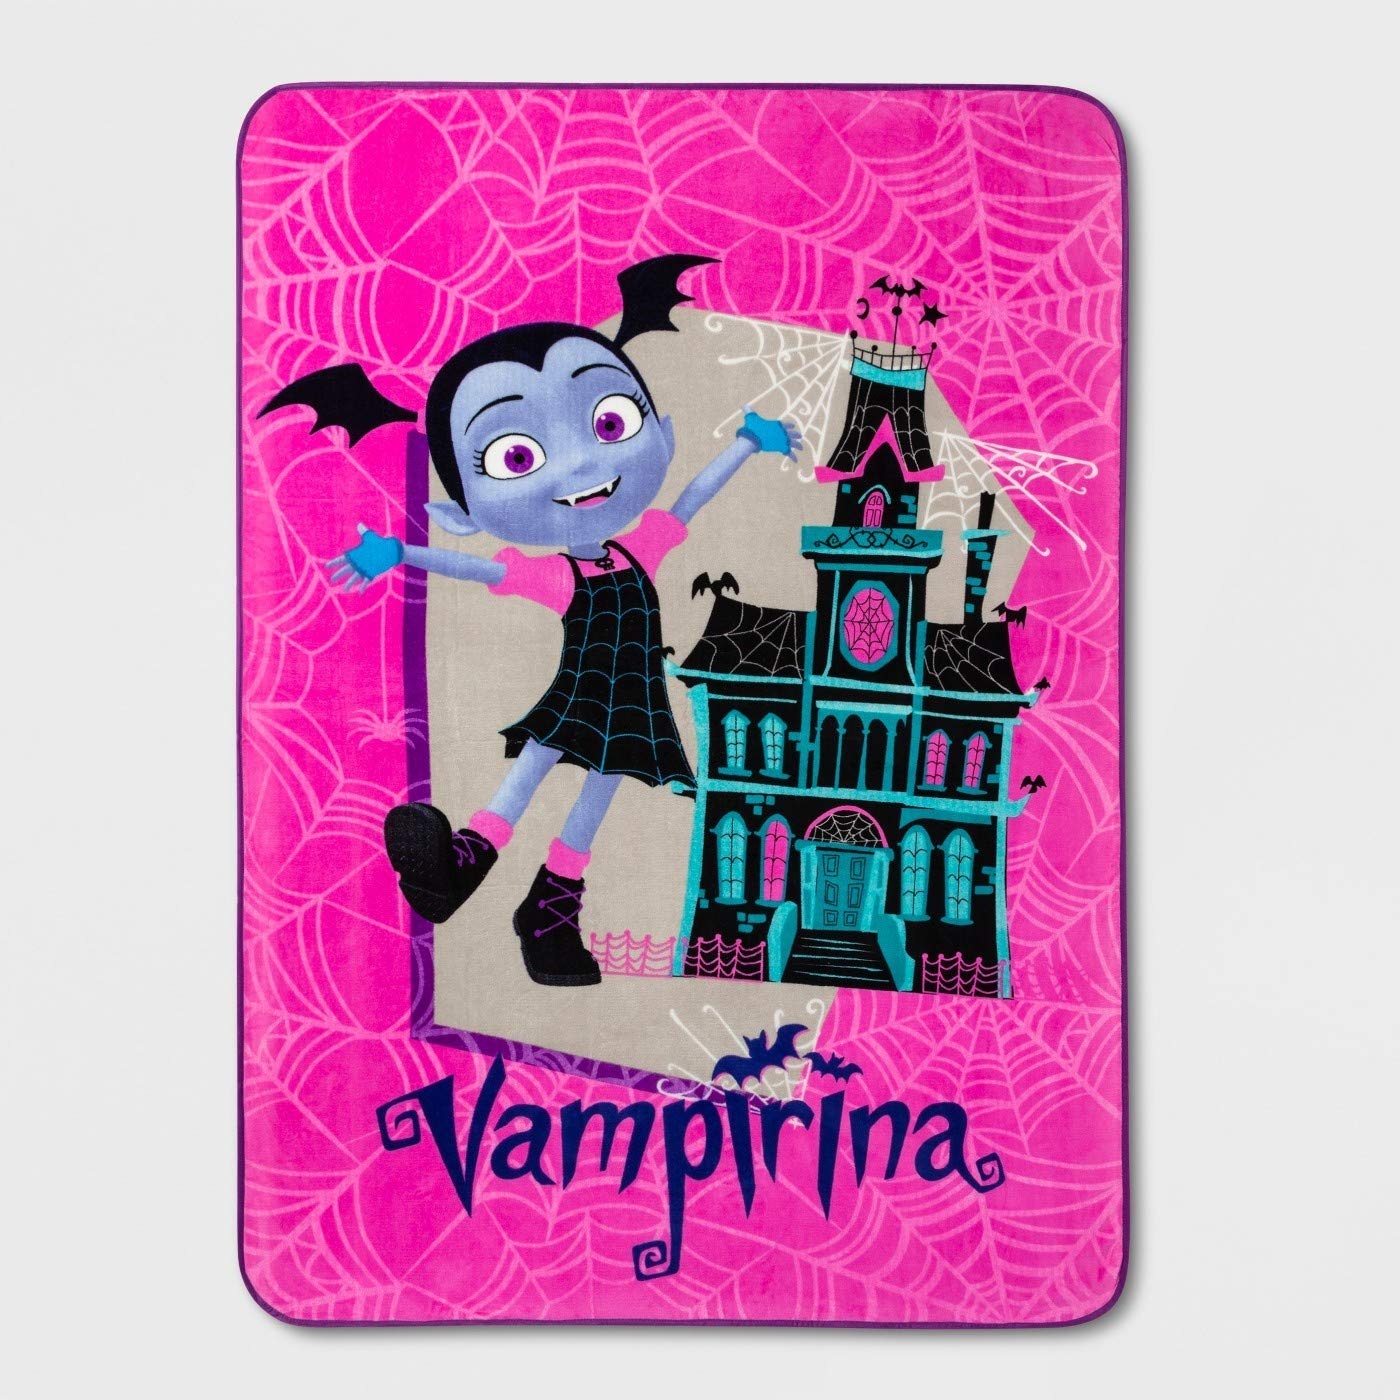 Franco Vampirina Twin Bed Blanket 62 x 90 Inches